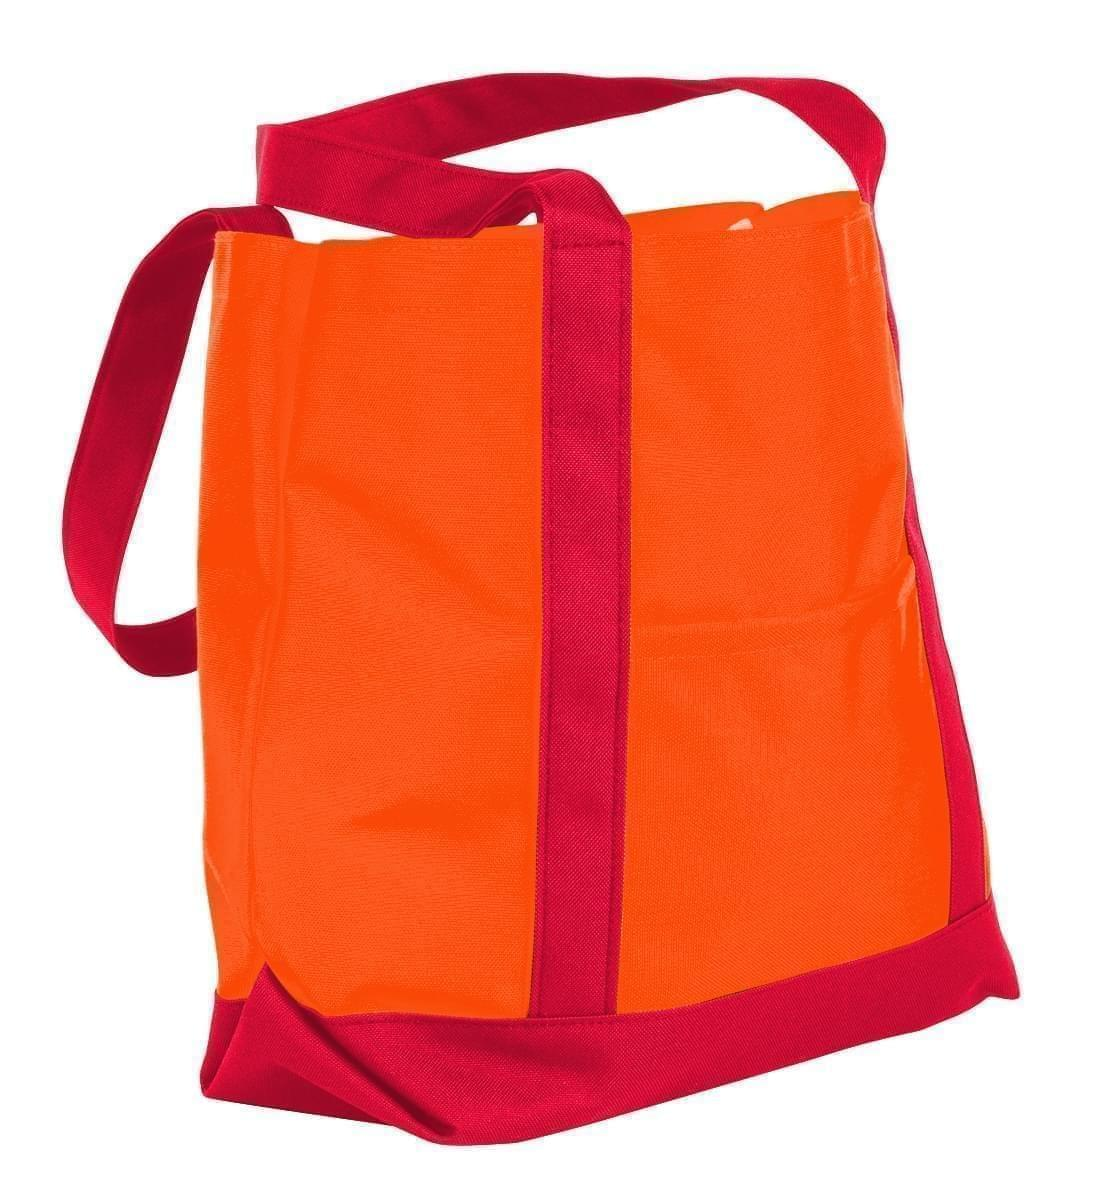 USA Made Nylon Poly Boat Tote Bags, Orange-Red, XAACL1UAXL